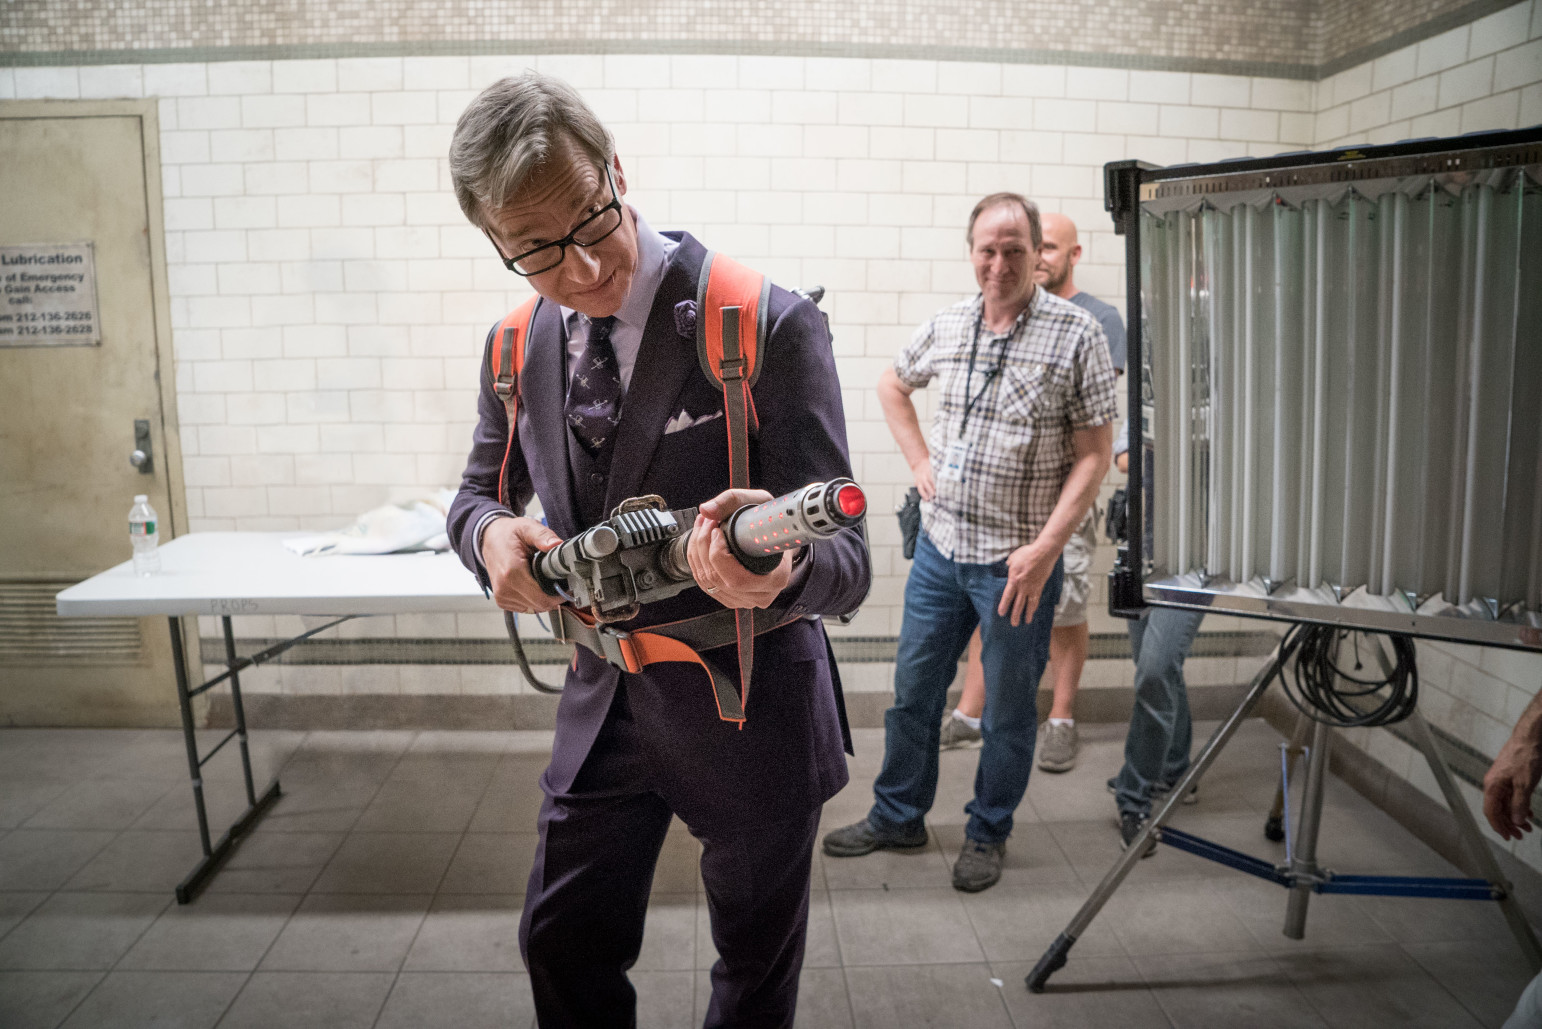 Paul Feig on the set of Ghostbusters